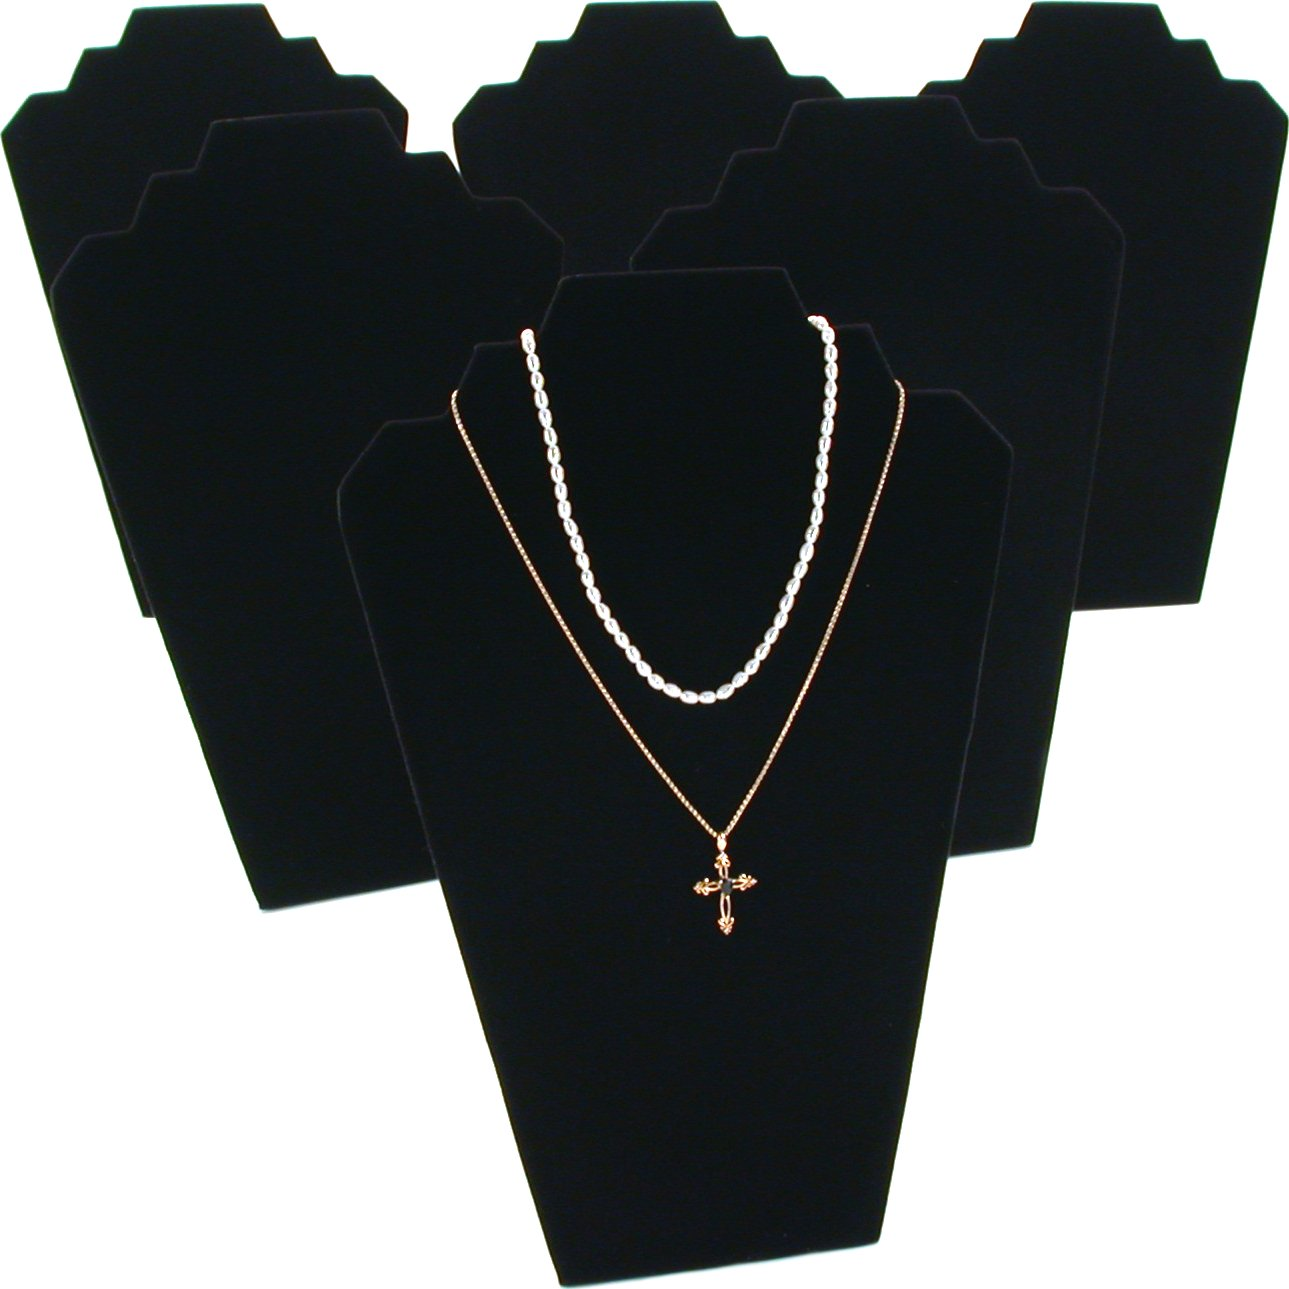 6 Black Velvet Padded 2 Tier Necklace Pendant Bust Showcase Displays 12.5""